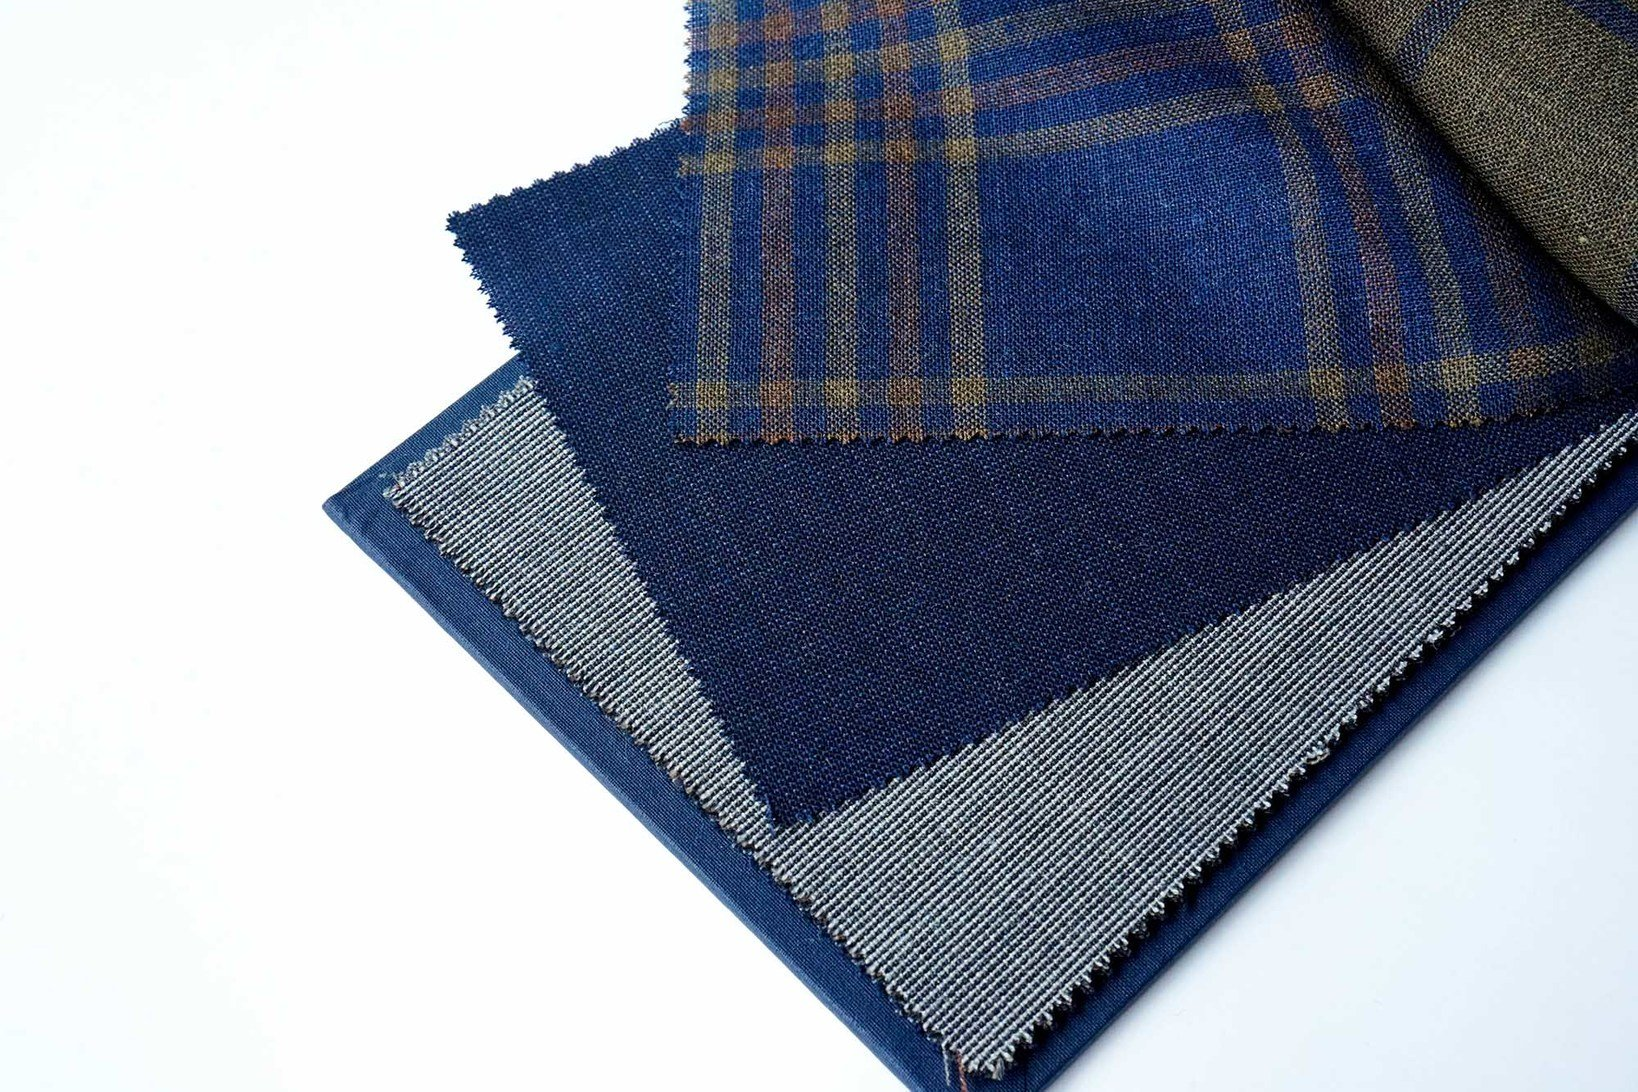 "<a href=""https://muuseo.com/square/articles/1127"">FOX BROTHERS</a>「FOX AIR」100% WOOL 285/315GMS 40色柄"